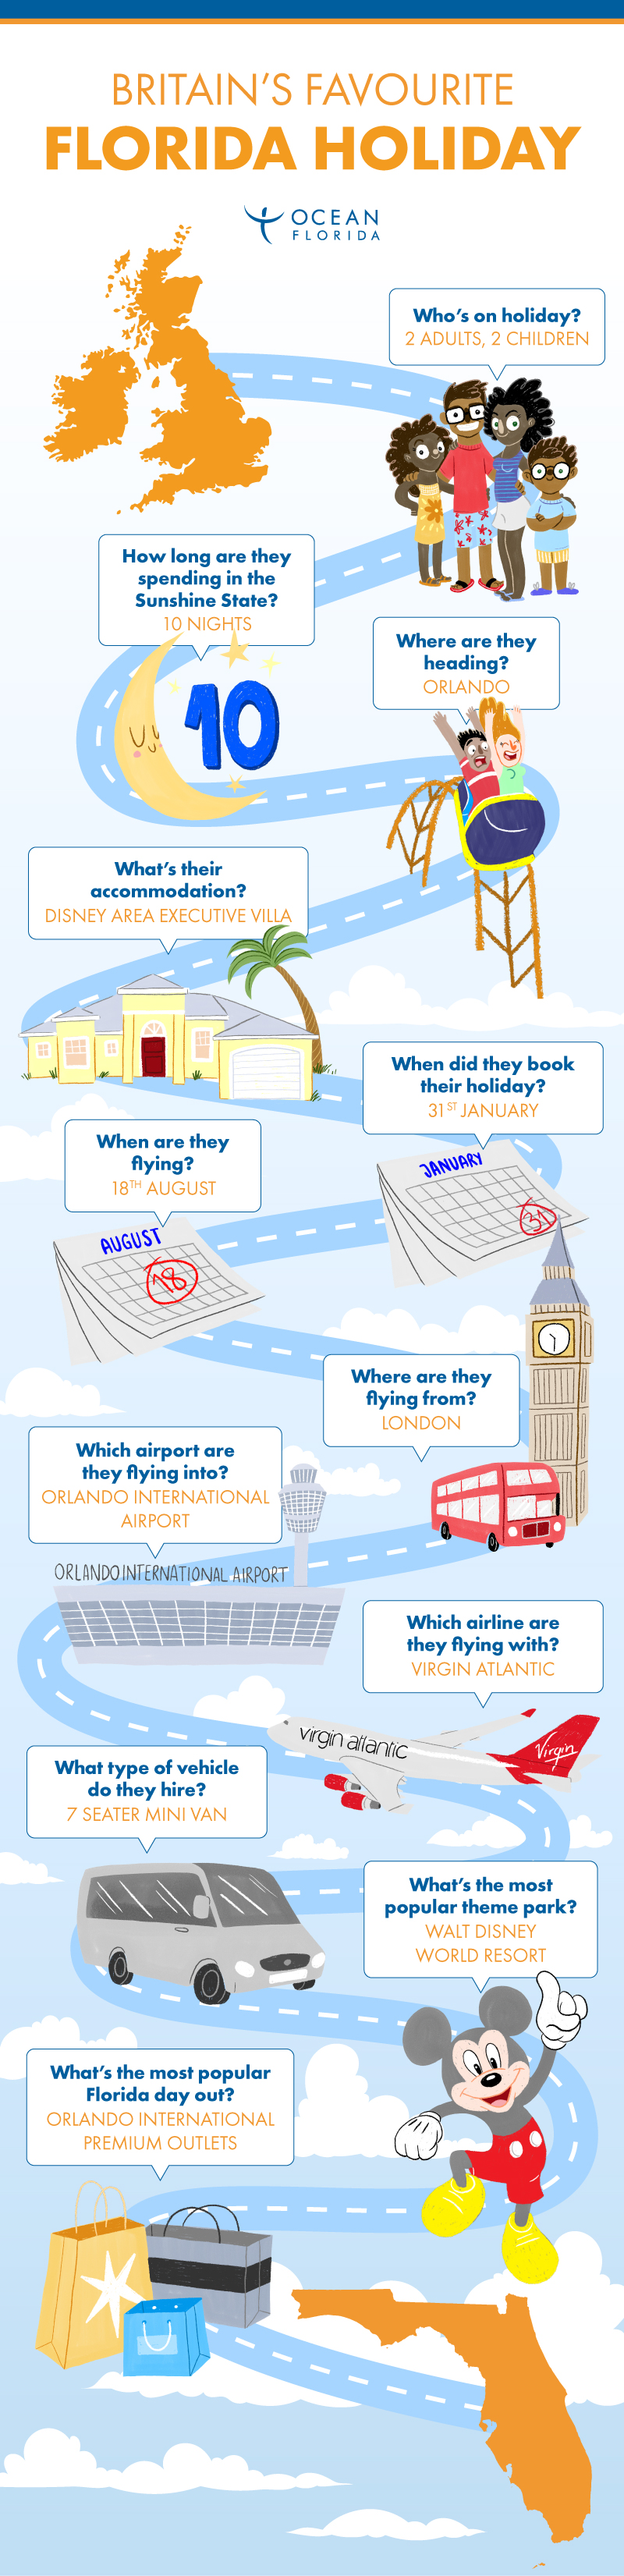 Britain's favourite Florida holiday infographic